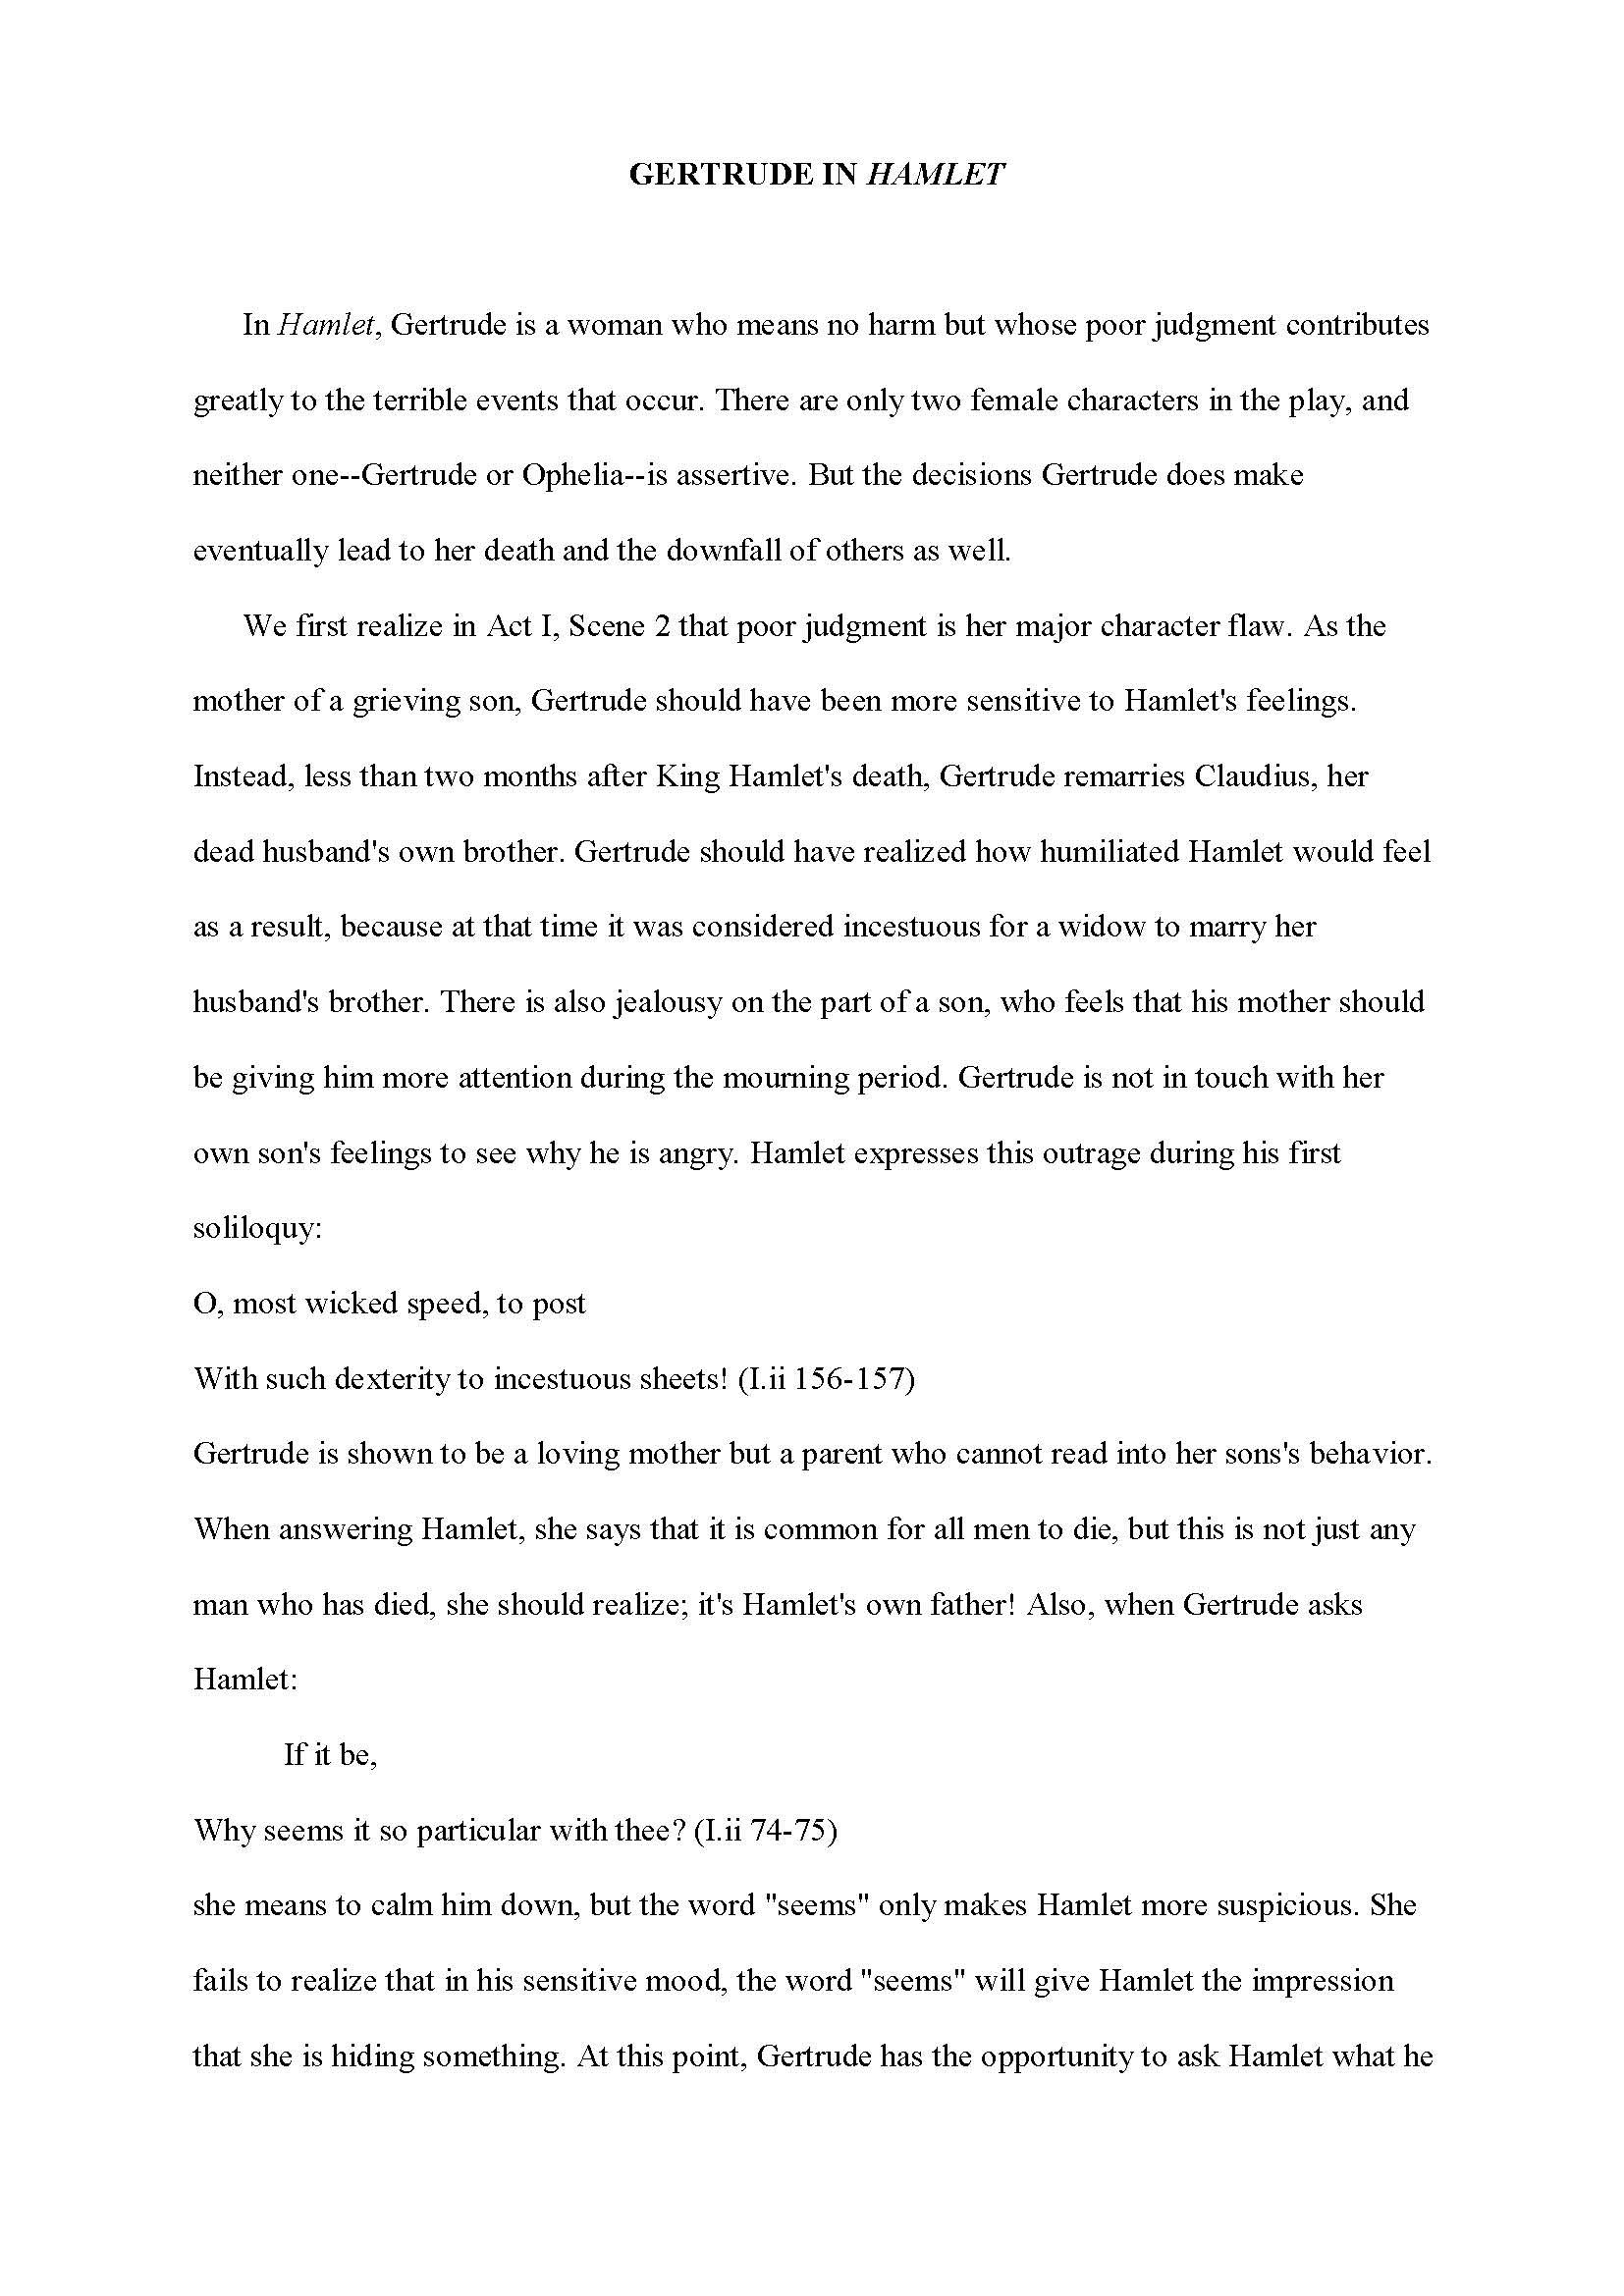 004 Analysis Essay Sample Example Stirring Literary 4th Grade Full